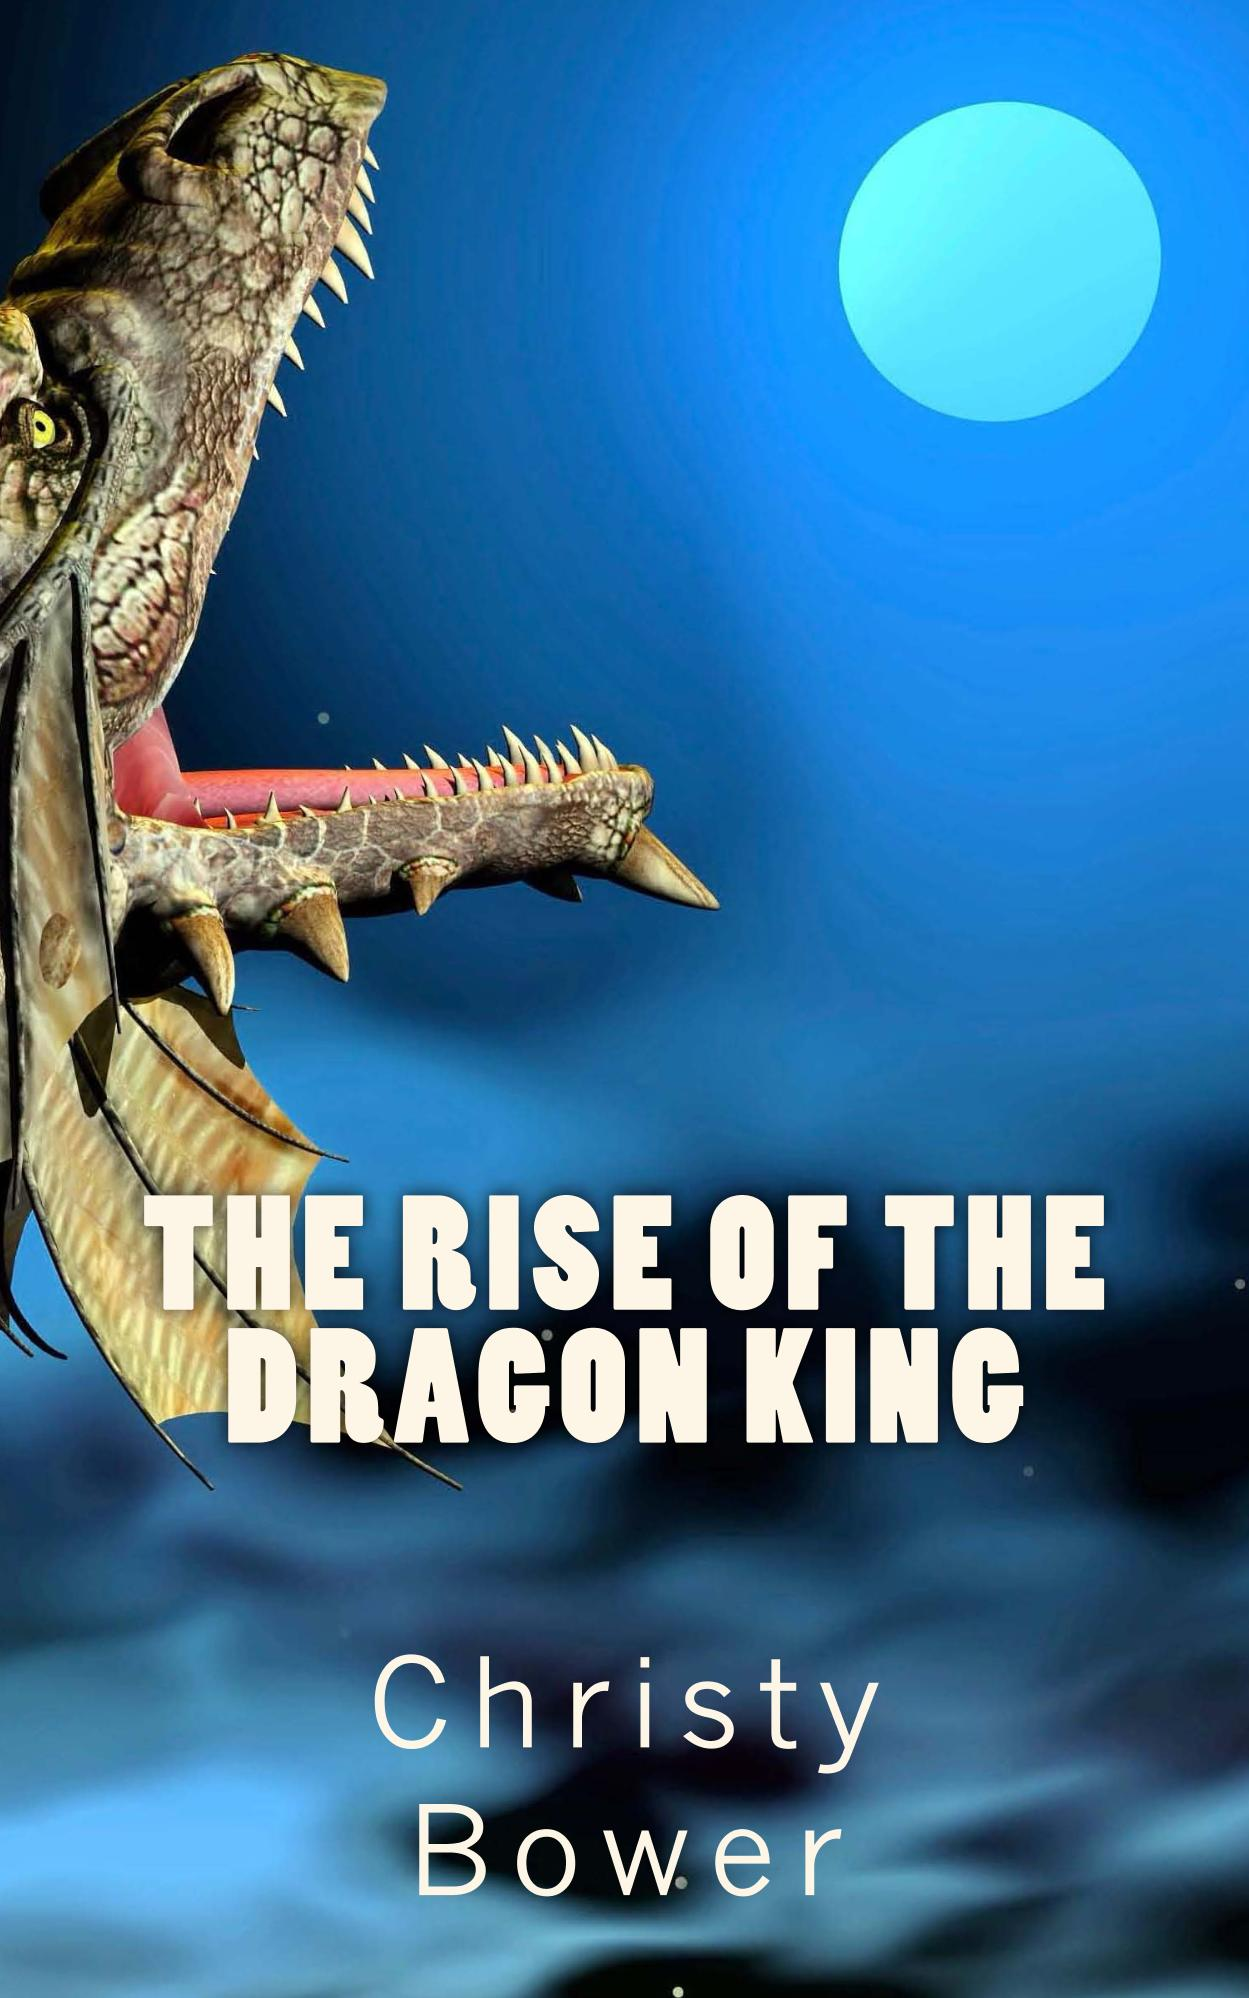 The Rise of the Dragon King